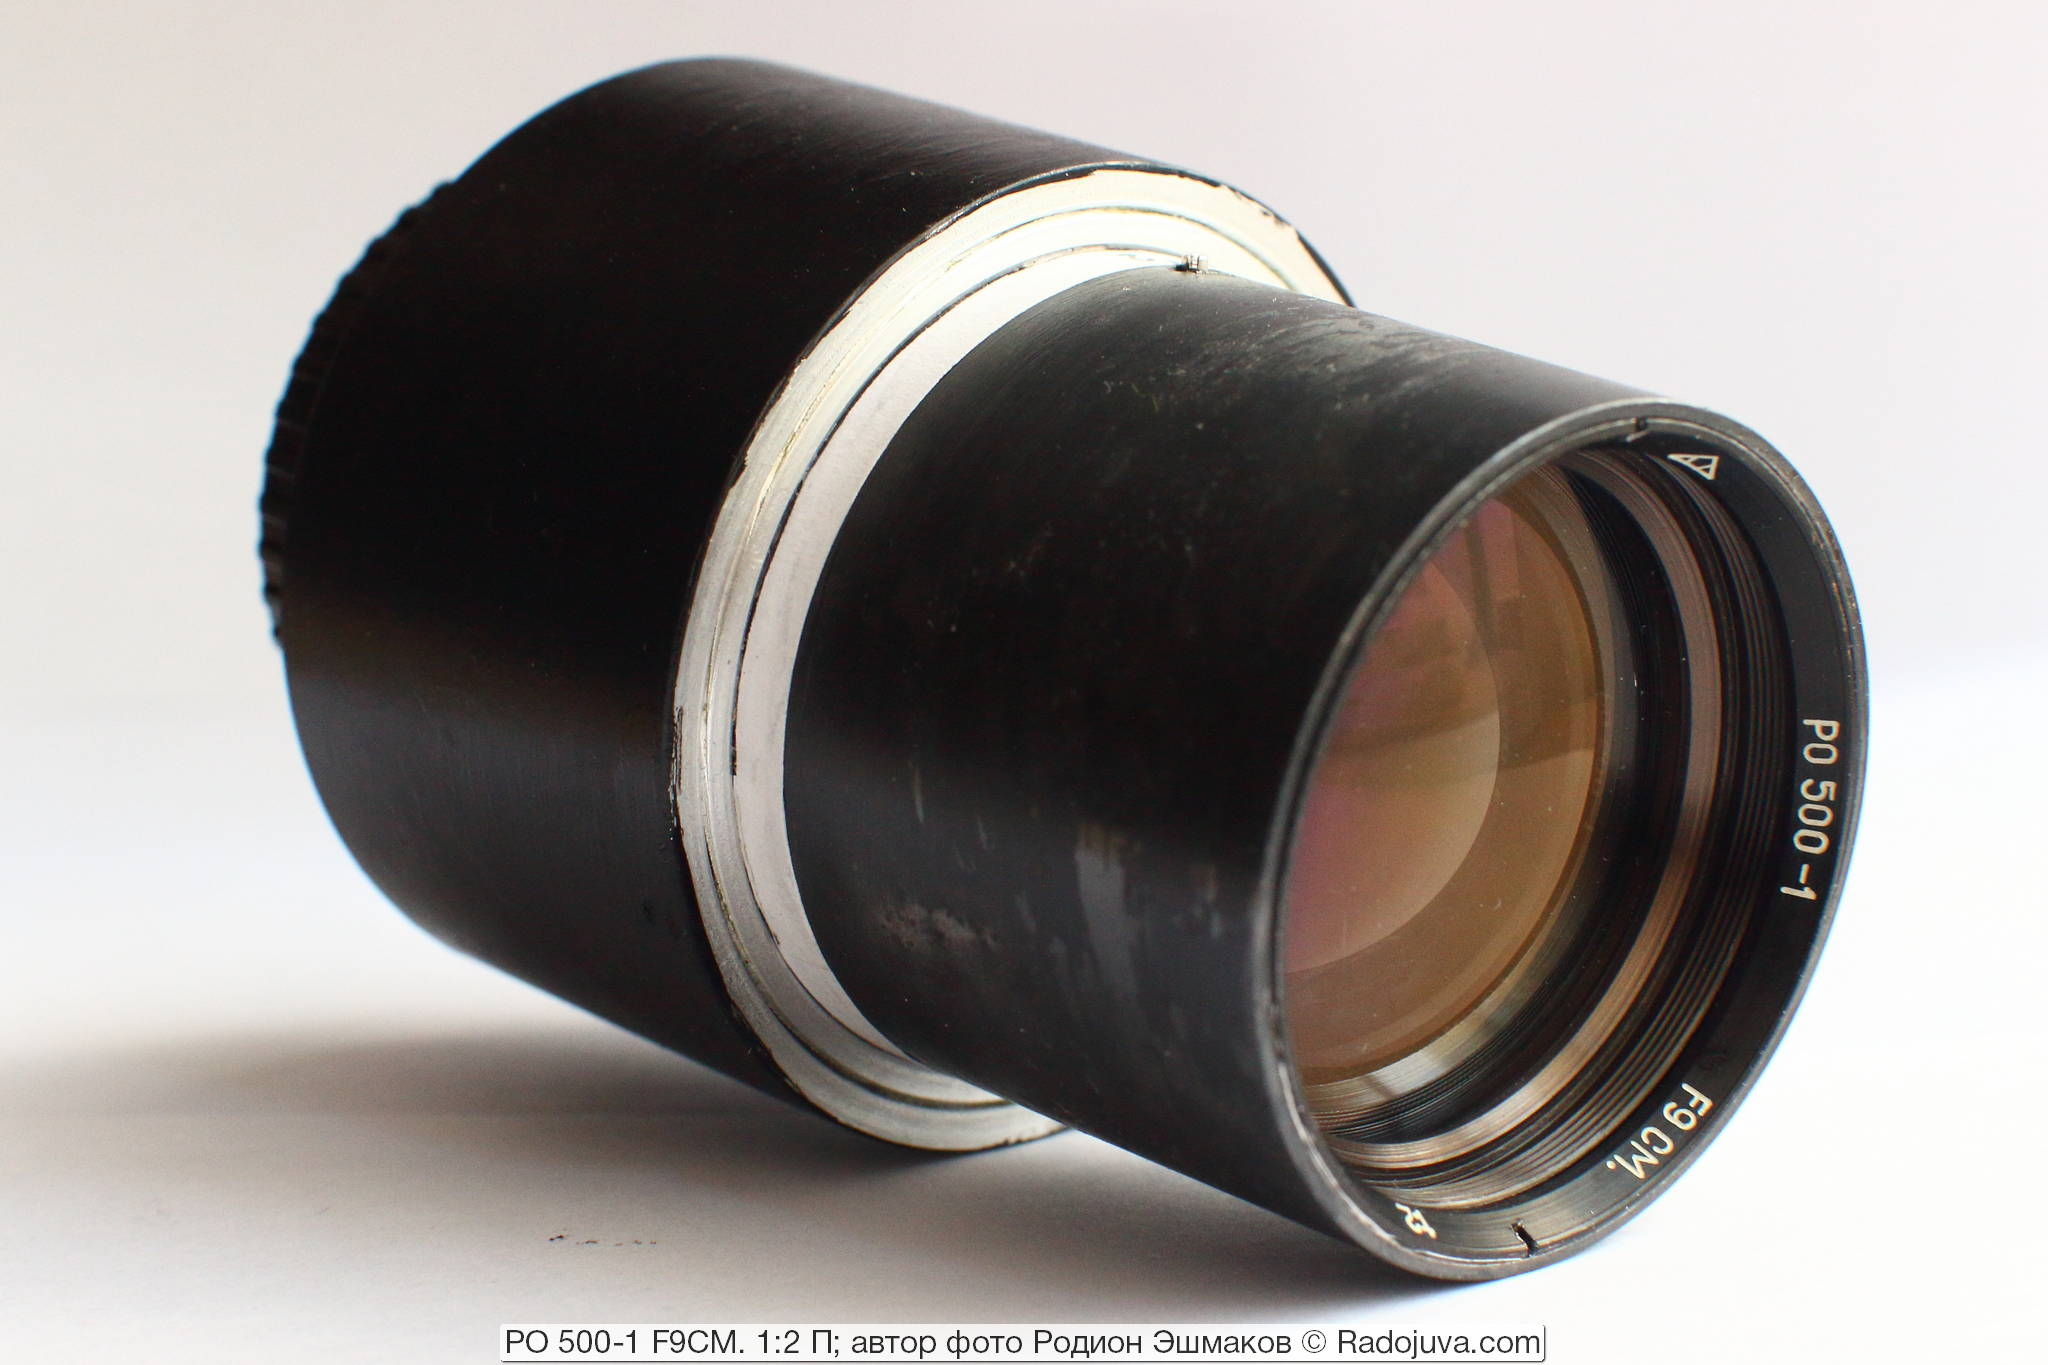 ro-500-new-lens-review-1